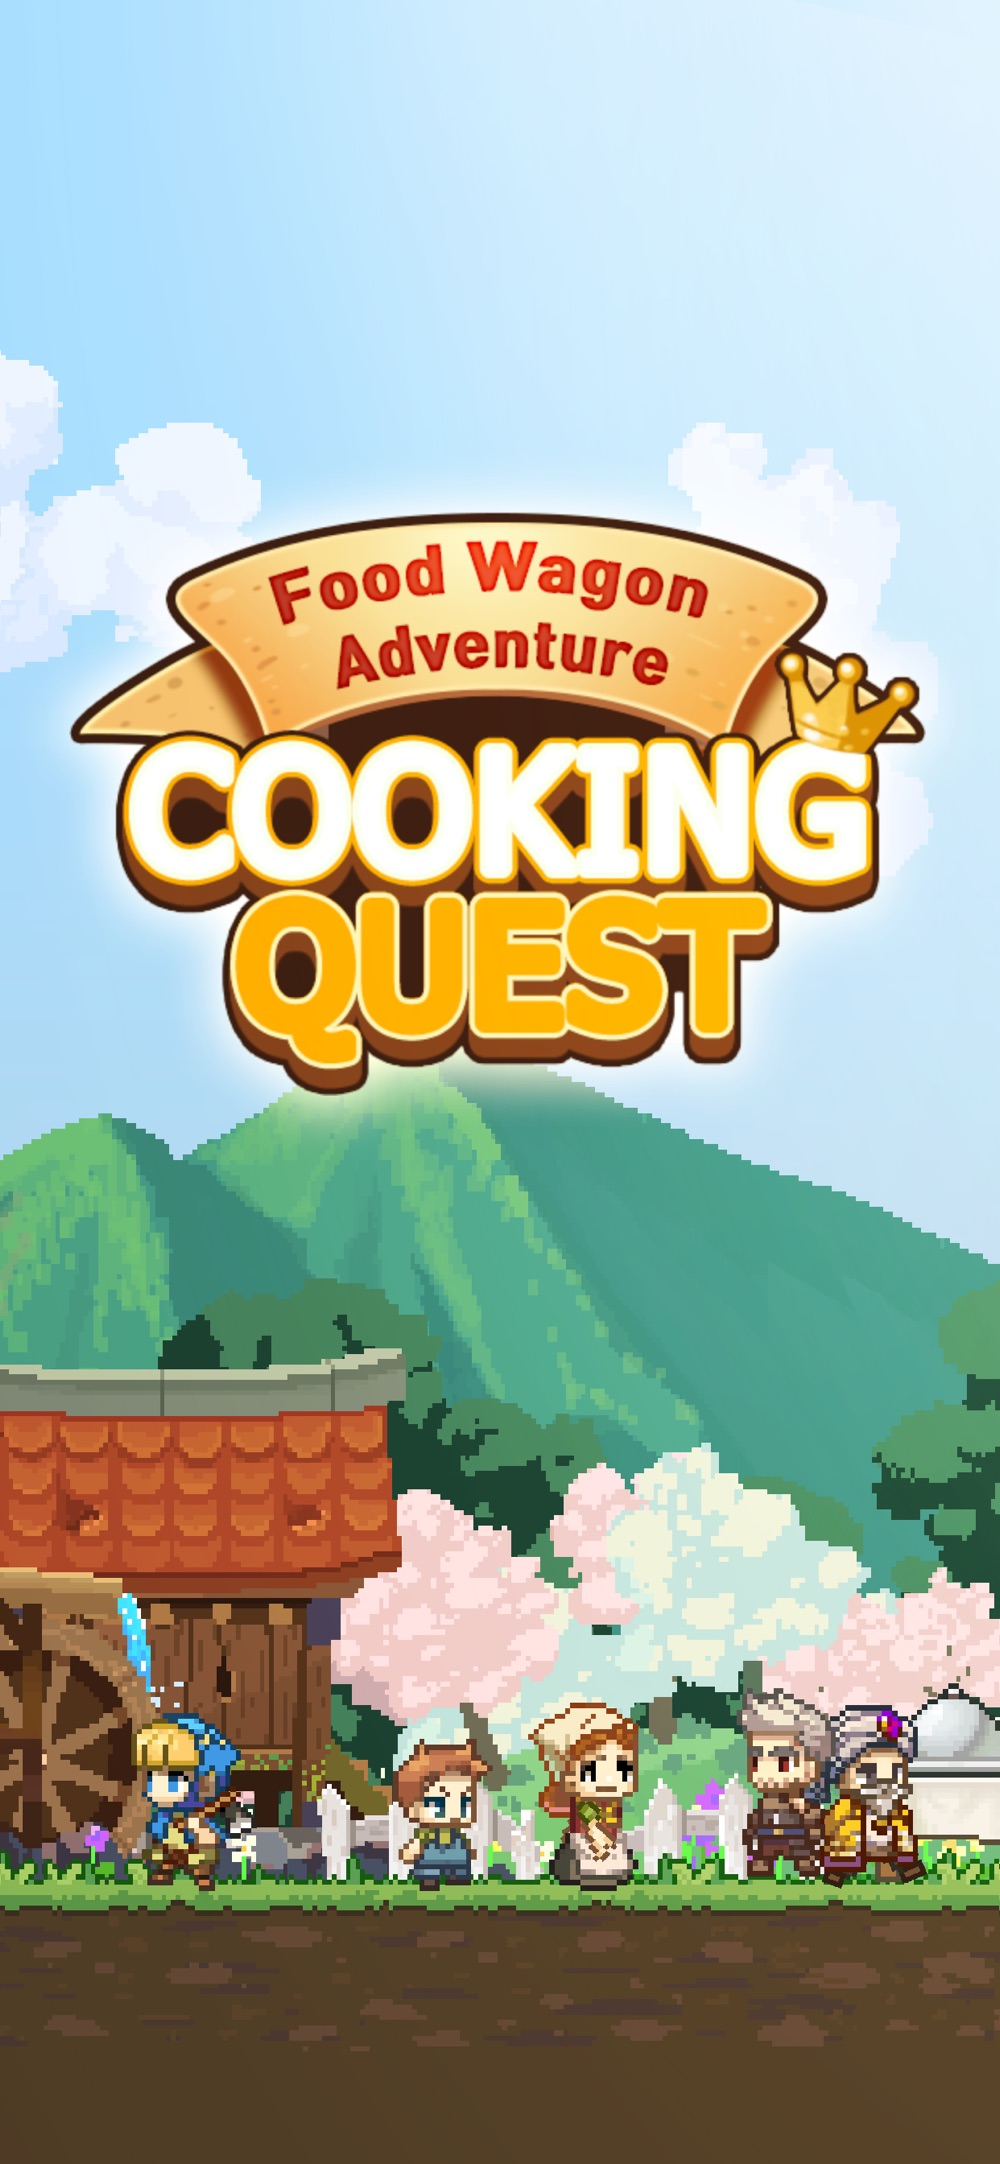 Cooking Quest : Food Wagon Cheat Codes